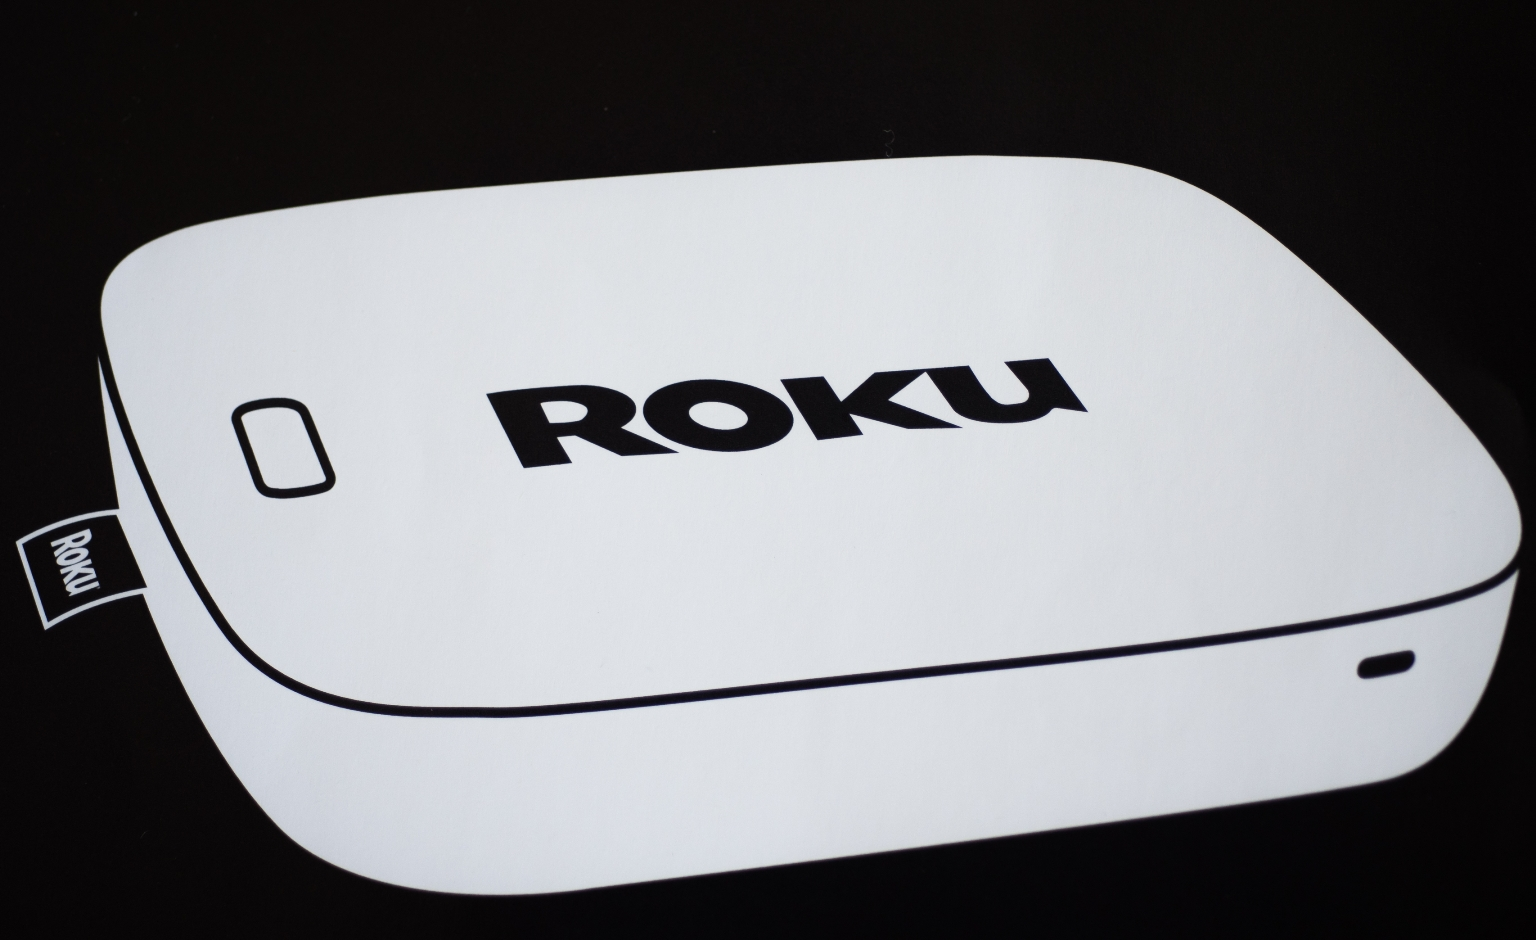 Google Assistant support is coming to Roku devices...